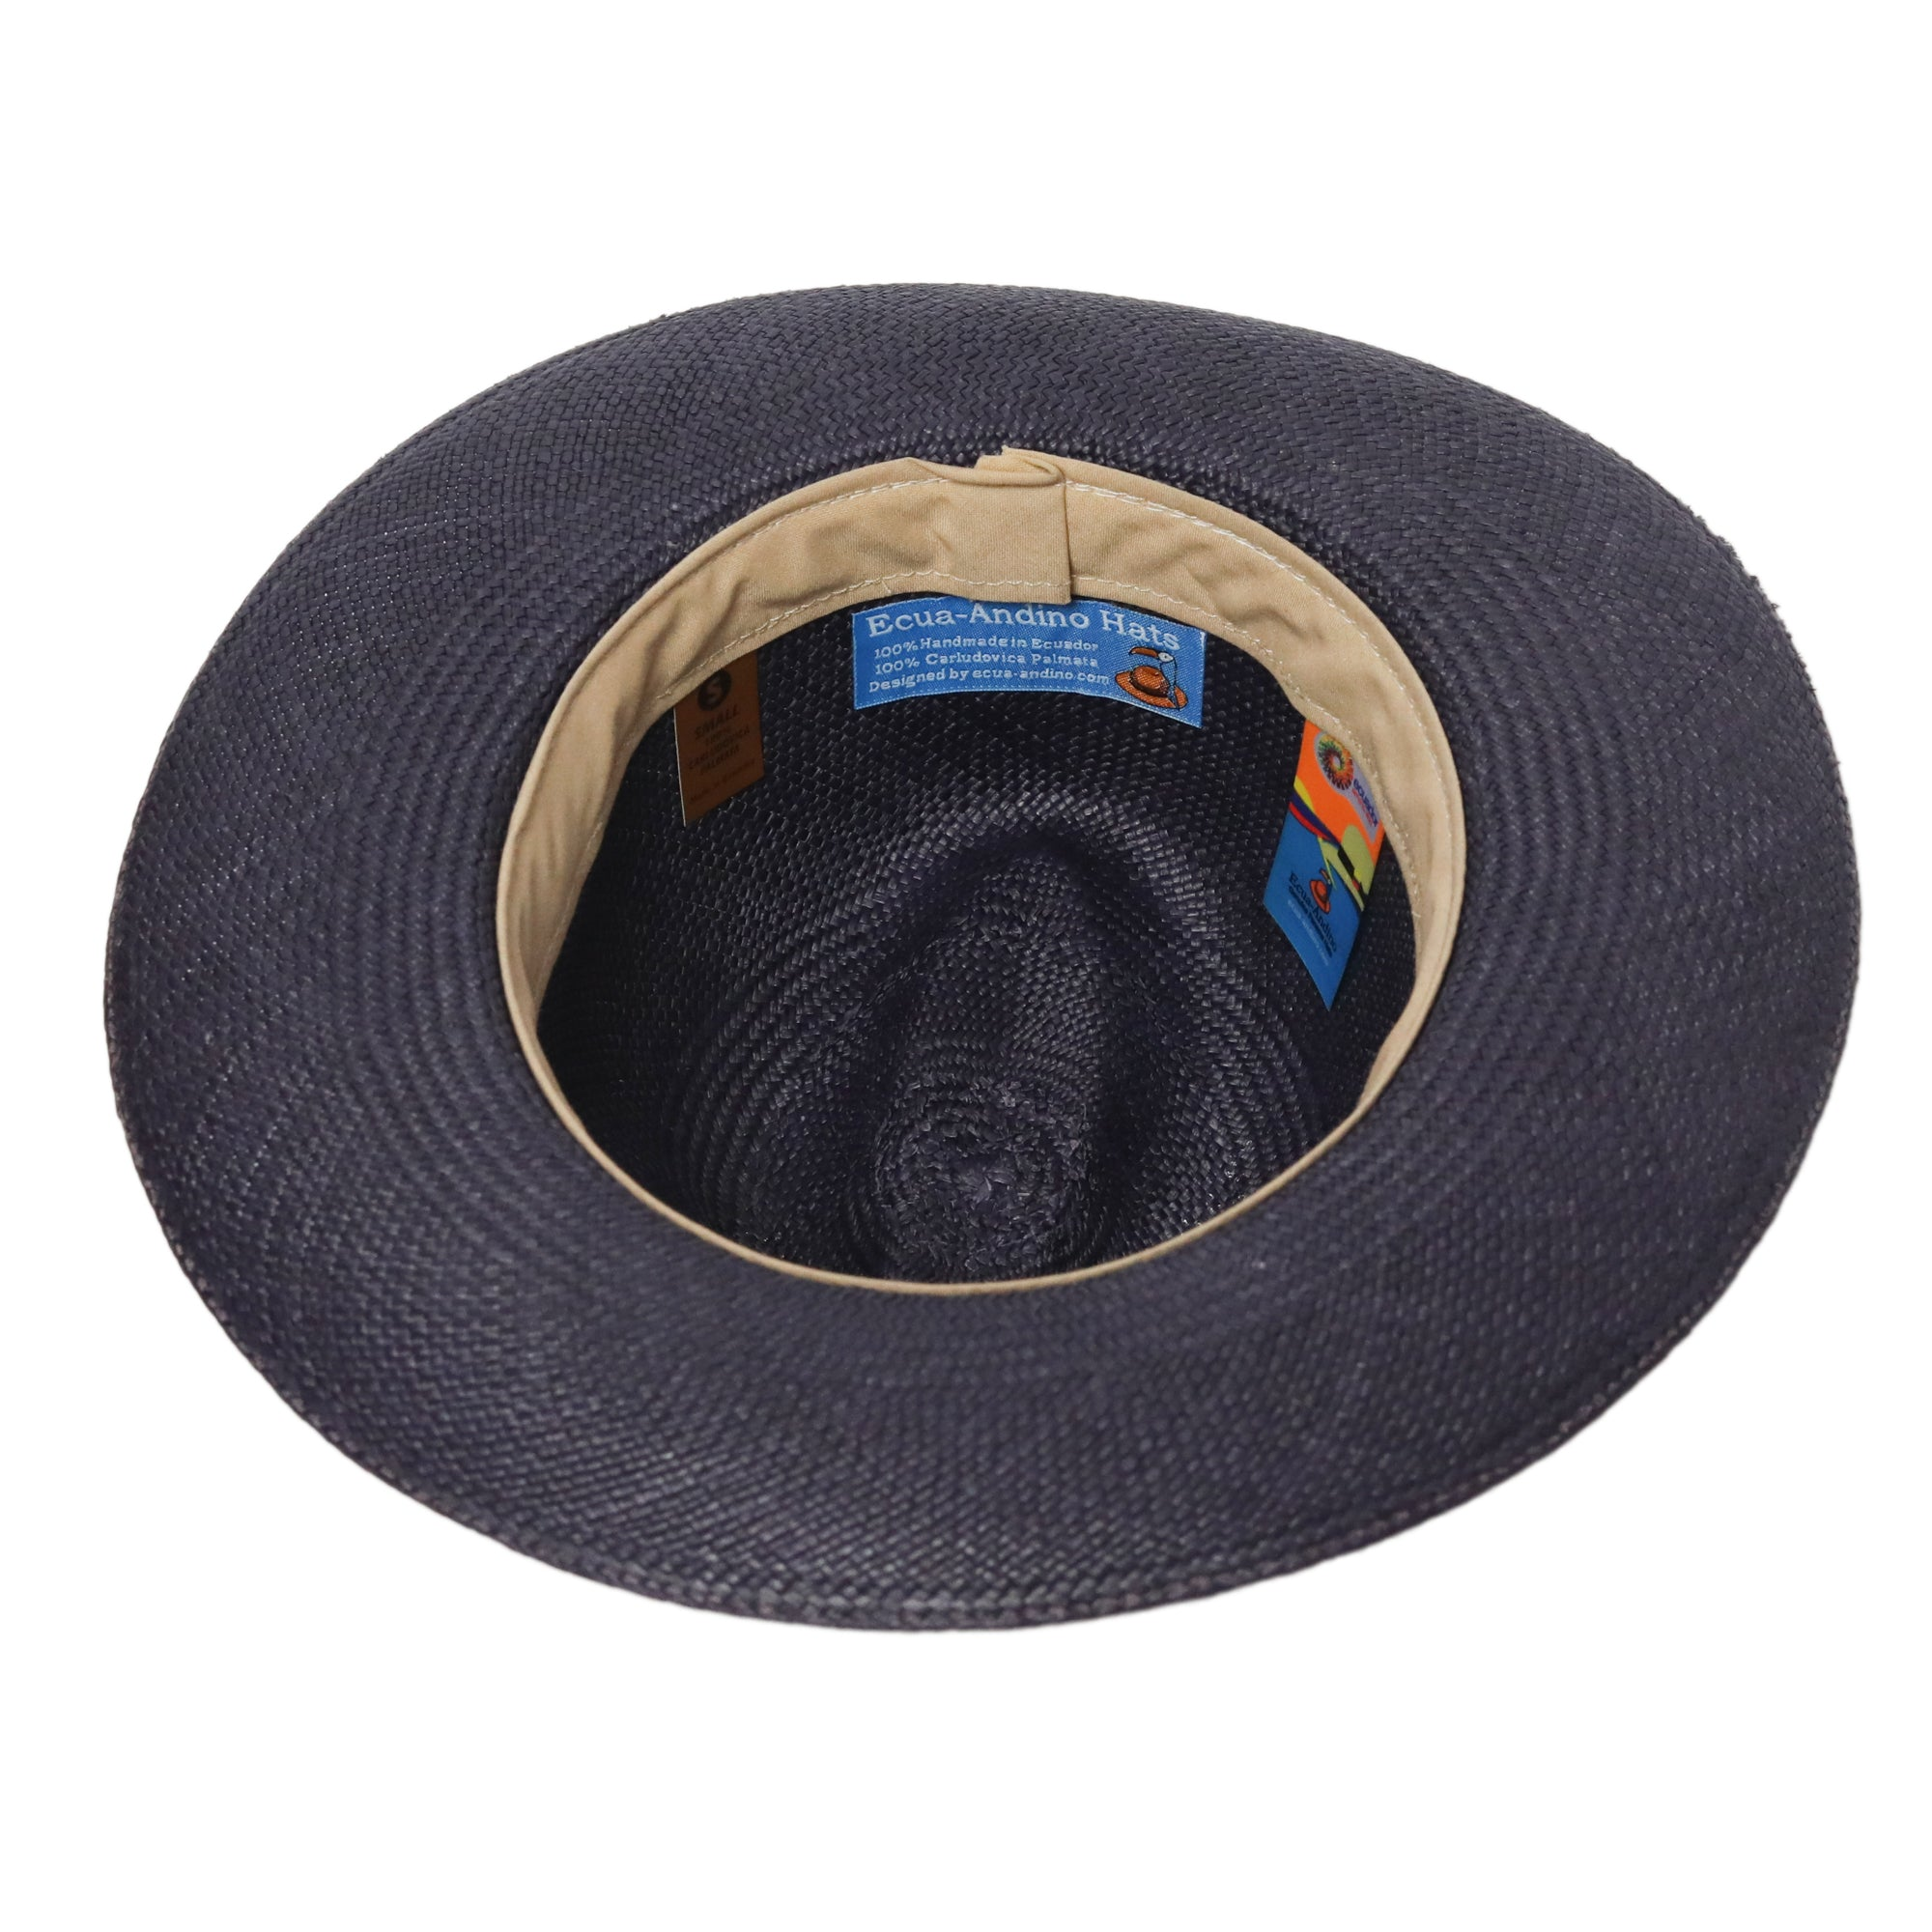 The Classic Navy Blue Panama Hat